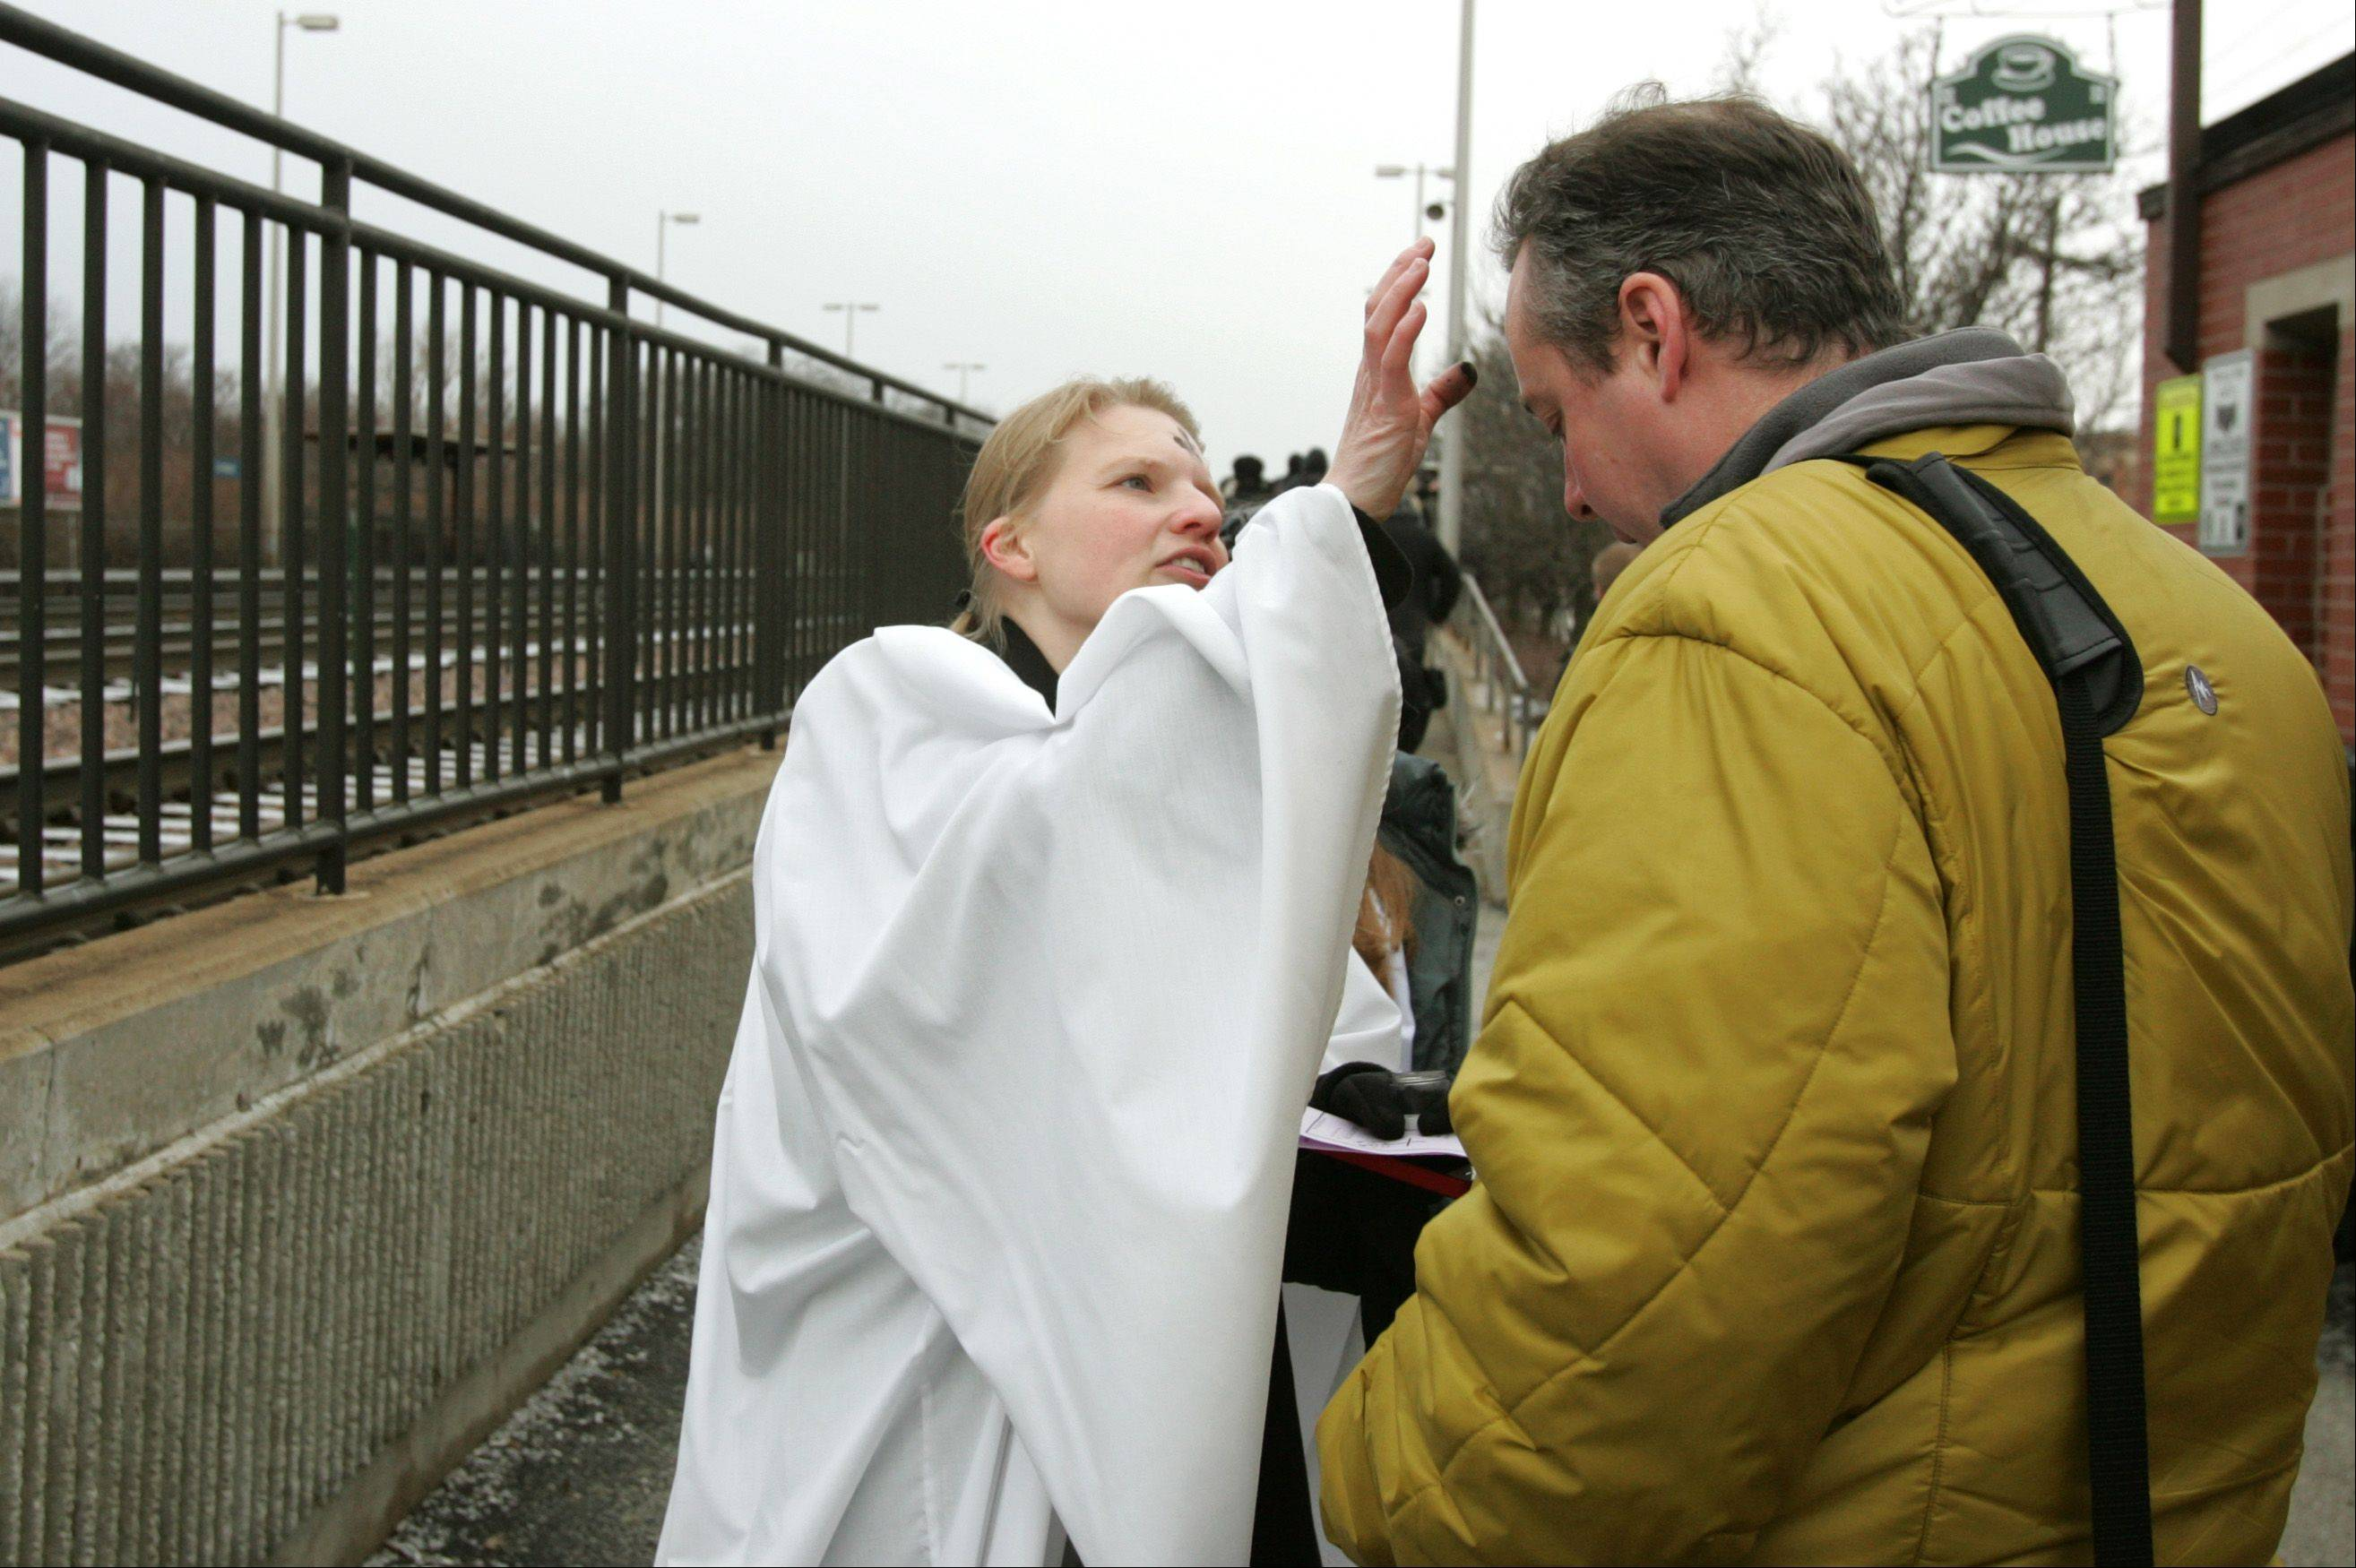 The Rev. Emily Mellott, pastor of Calvary Episcopal Church in Lombard, dispenses Ashes to Go to commuter Don Feeley on Wednesday morning at the Lombard train station.